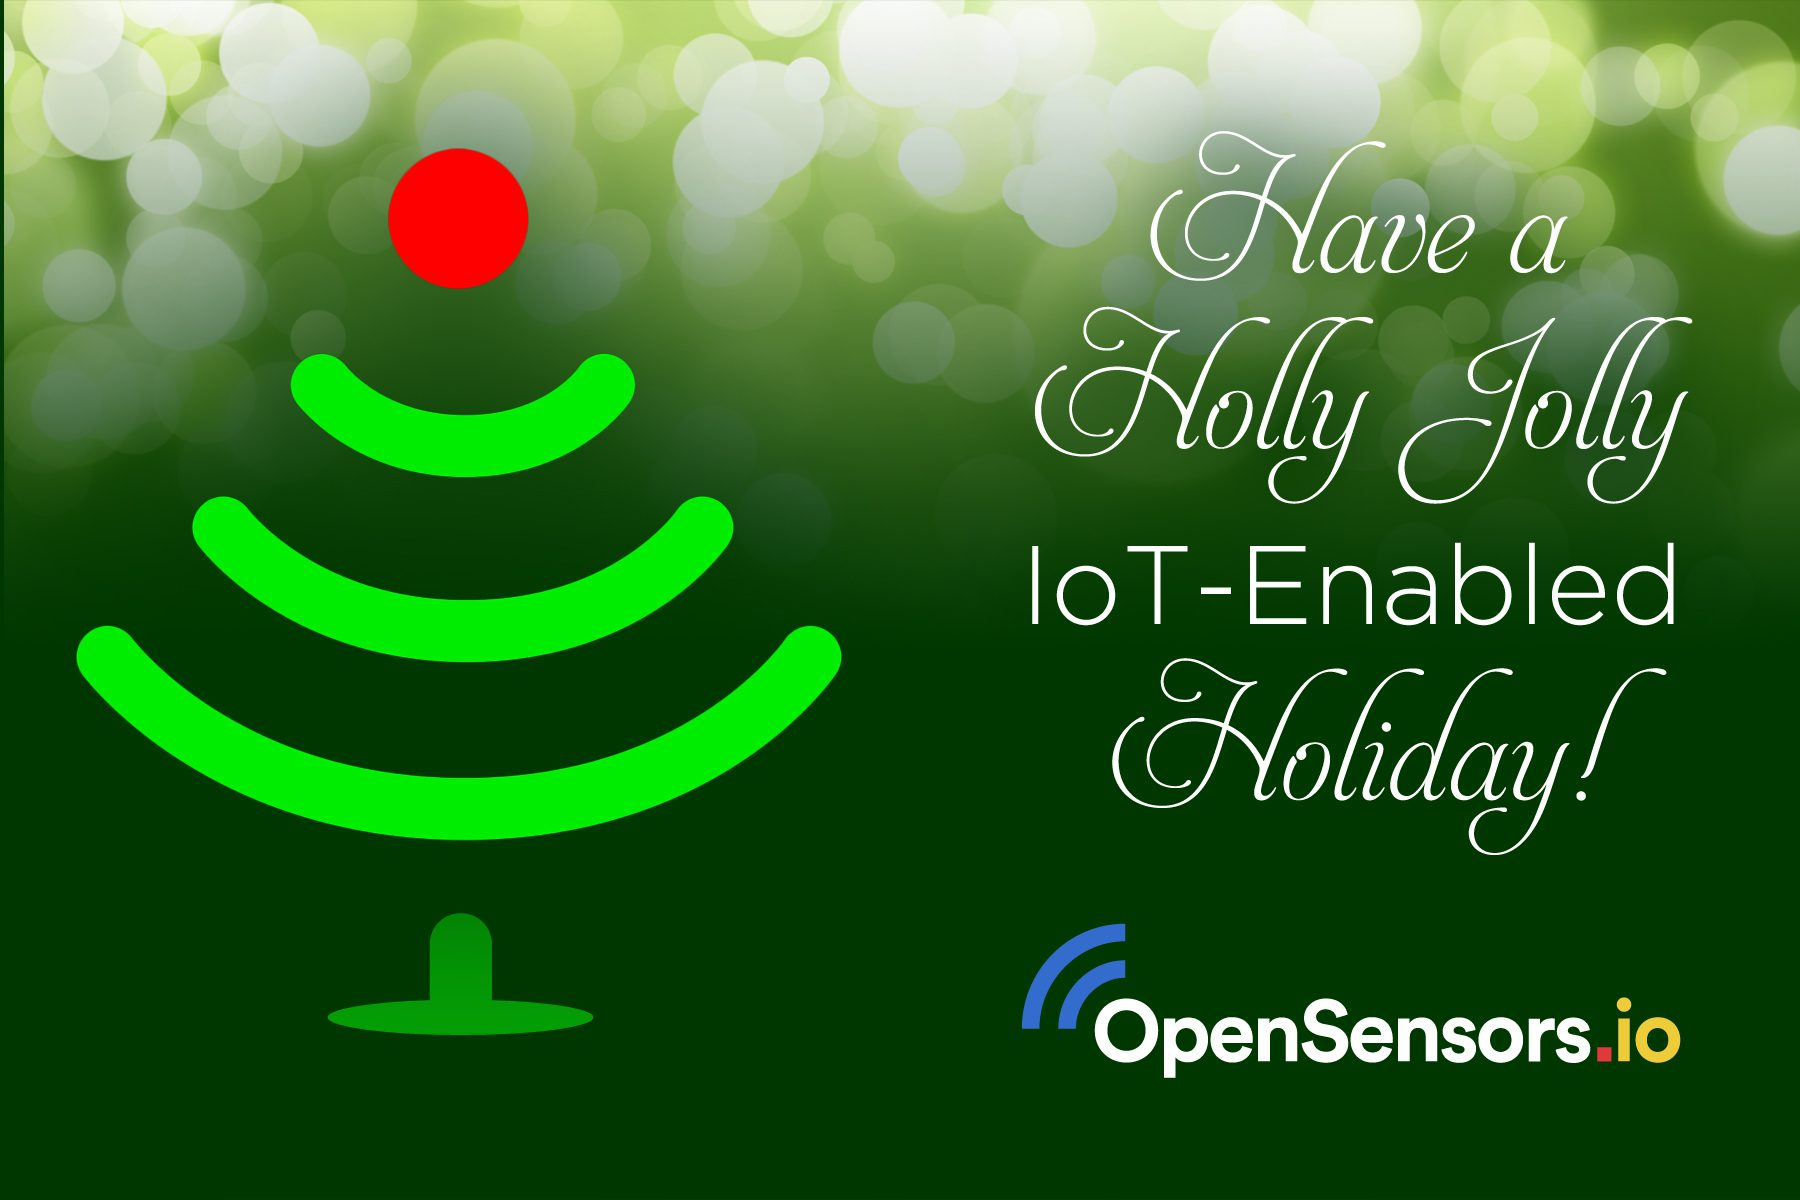 OpenSensors: Have a Holly Jolly IoT-Enabled Holiday (postcard)